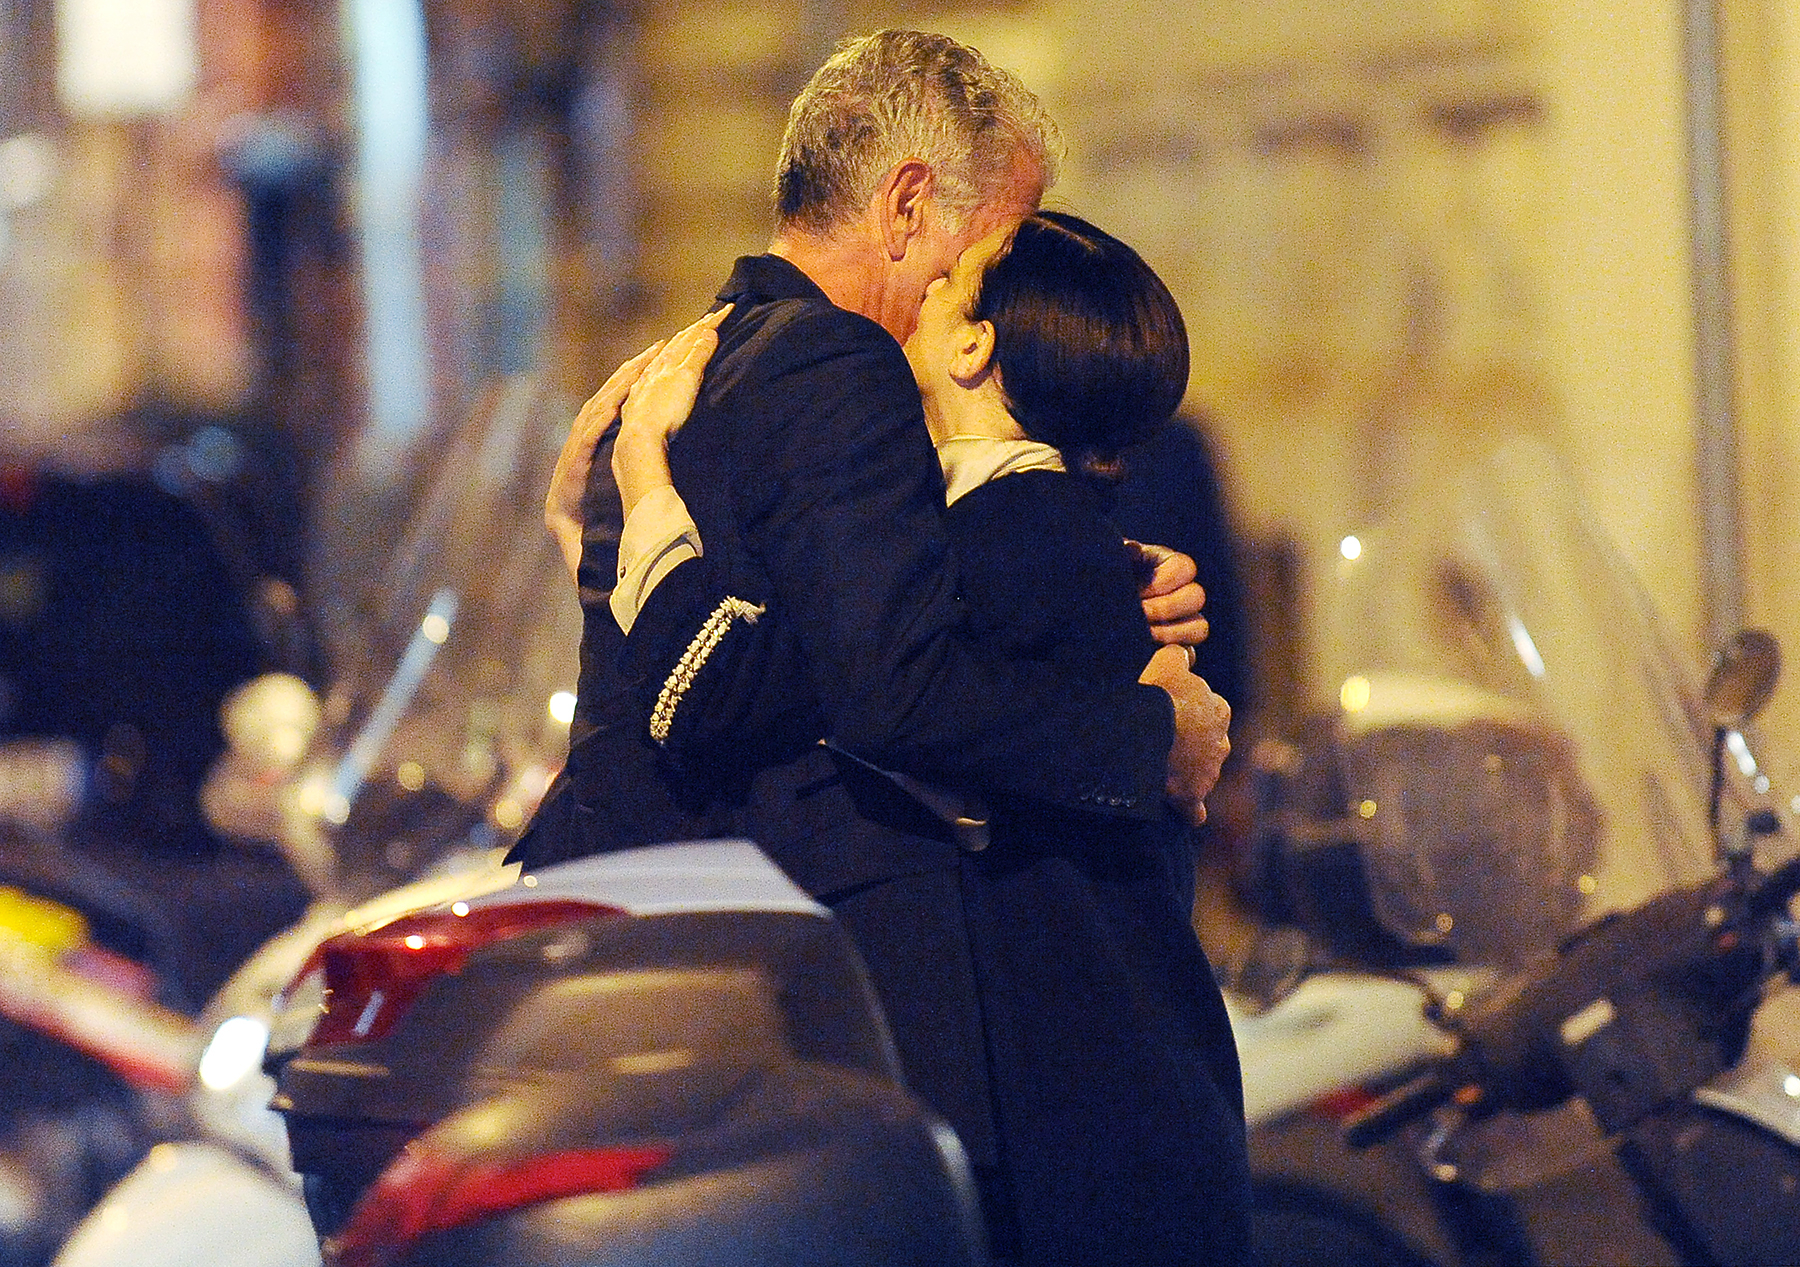 b3b665b1398d Inside Anthony Bourdain and Asia Argento s Romantic Relationship